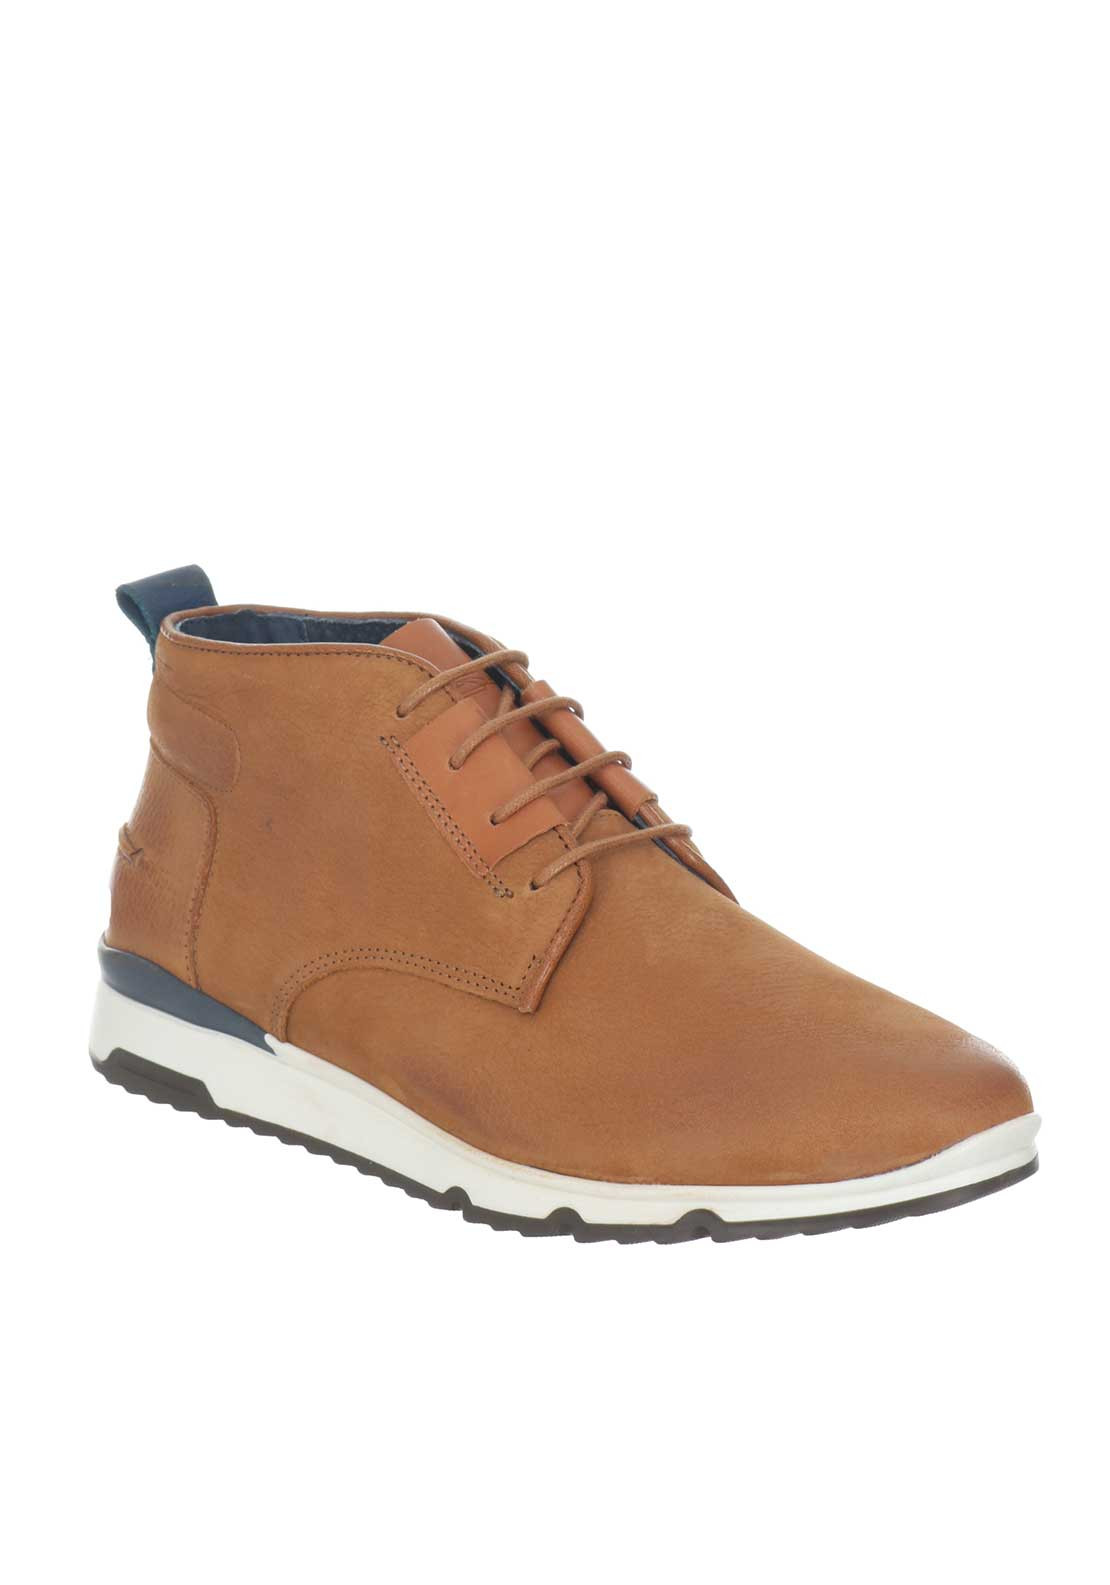 Tommy Bowe Griffin Leather Desert Boot, Tan